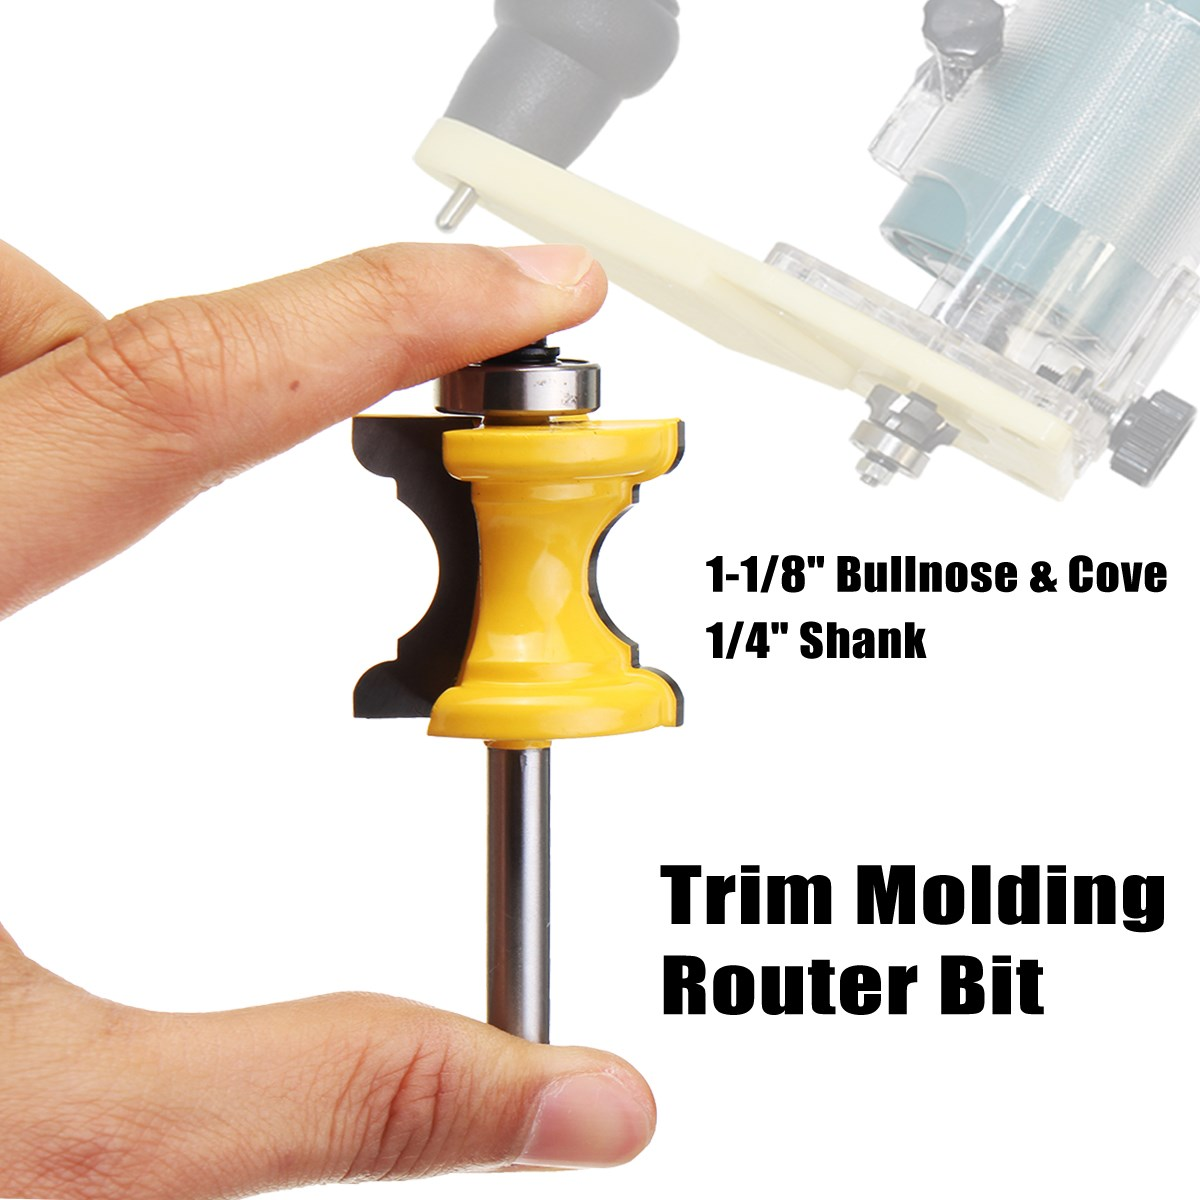 1-1/8'' Bullnose & Cove Trim Molding Router Bit 1/4'' Shank Woodworking cutter  Bead Column Face Molding Router Bit 1 2 shank bullnose bead column face molding router bit alloy woodworking cutter for wood milling machines power tool